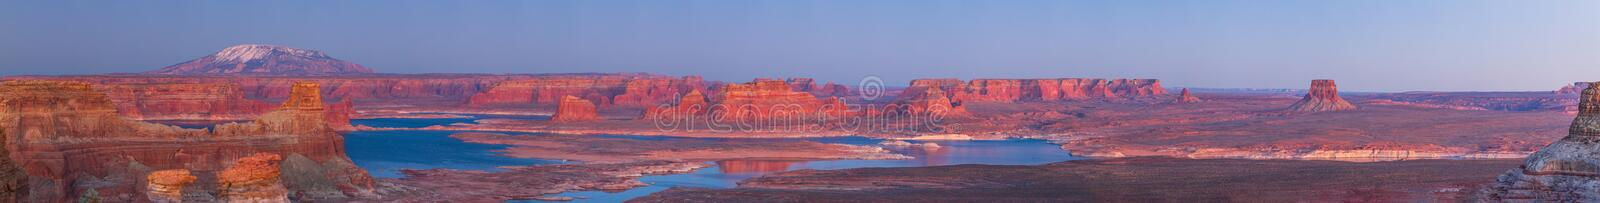 Por do sol no ponto de Alstrom, lago Powell fotografia de stock royalty free